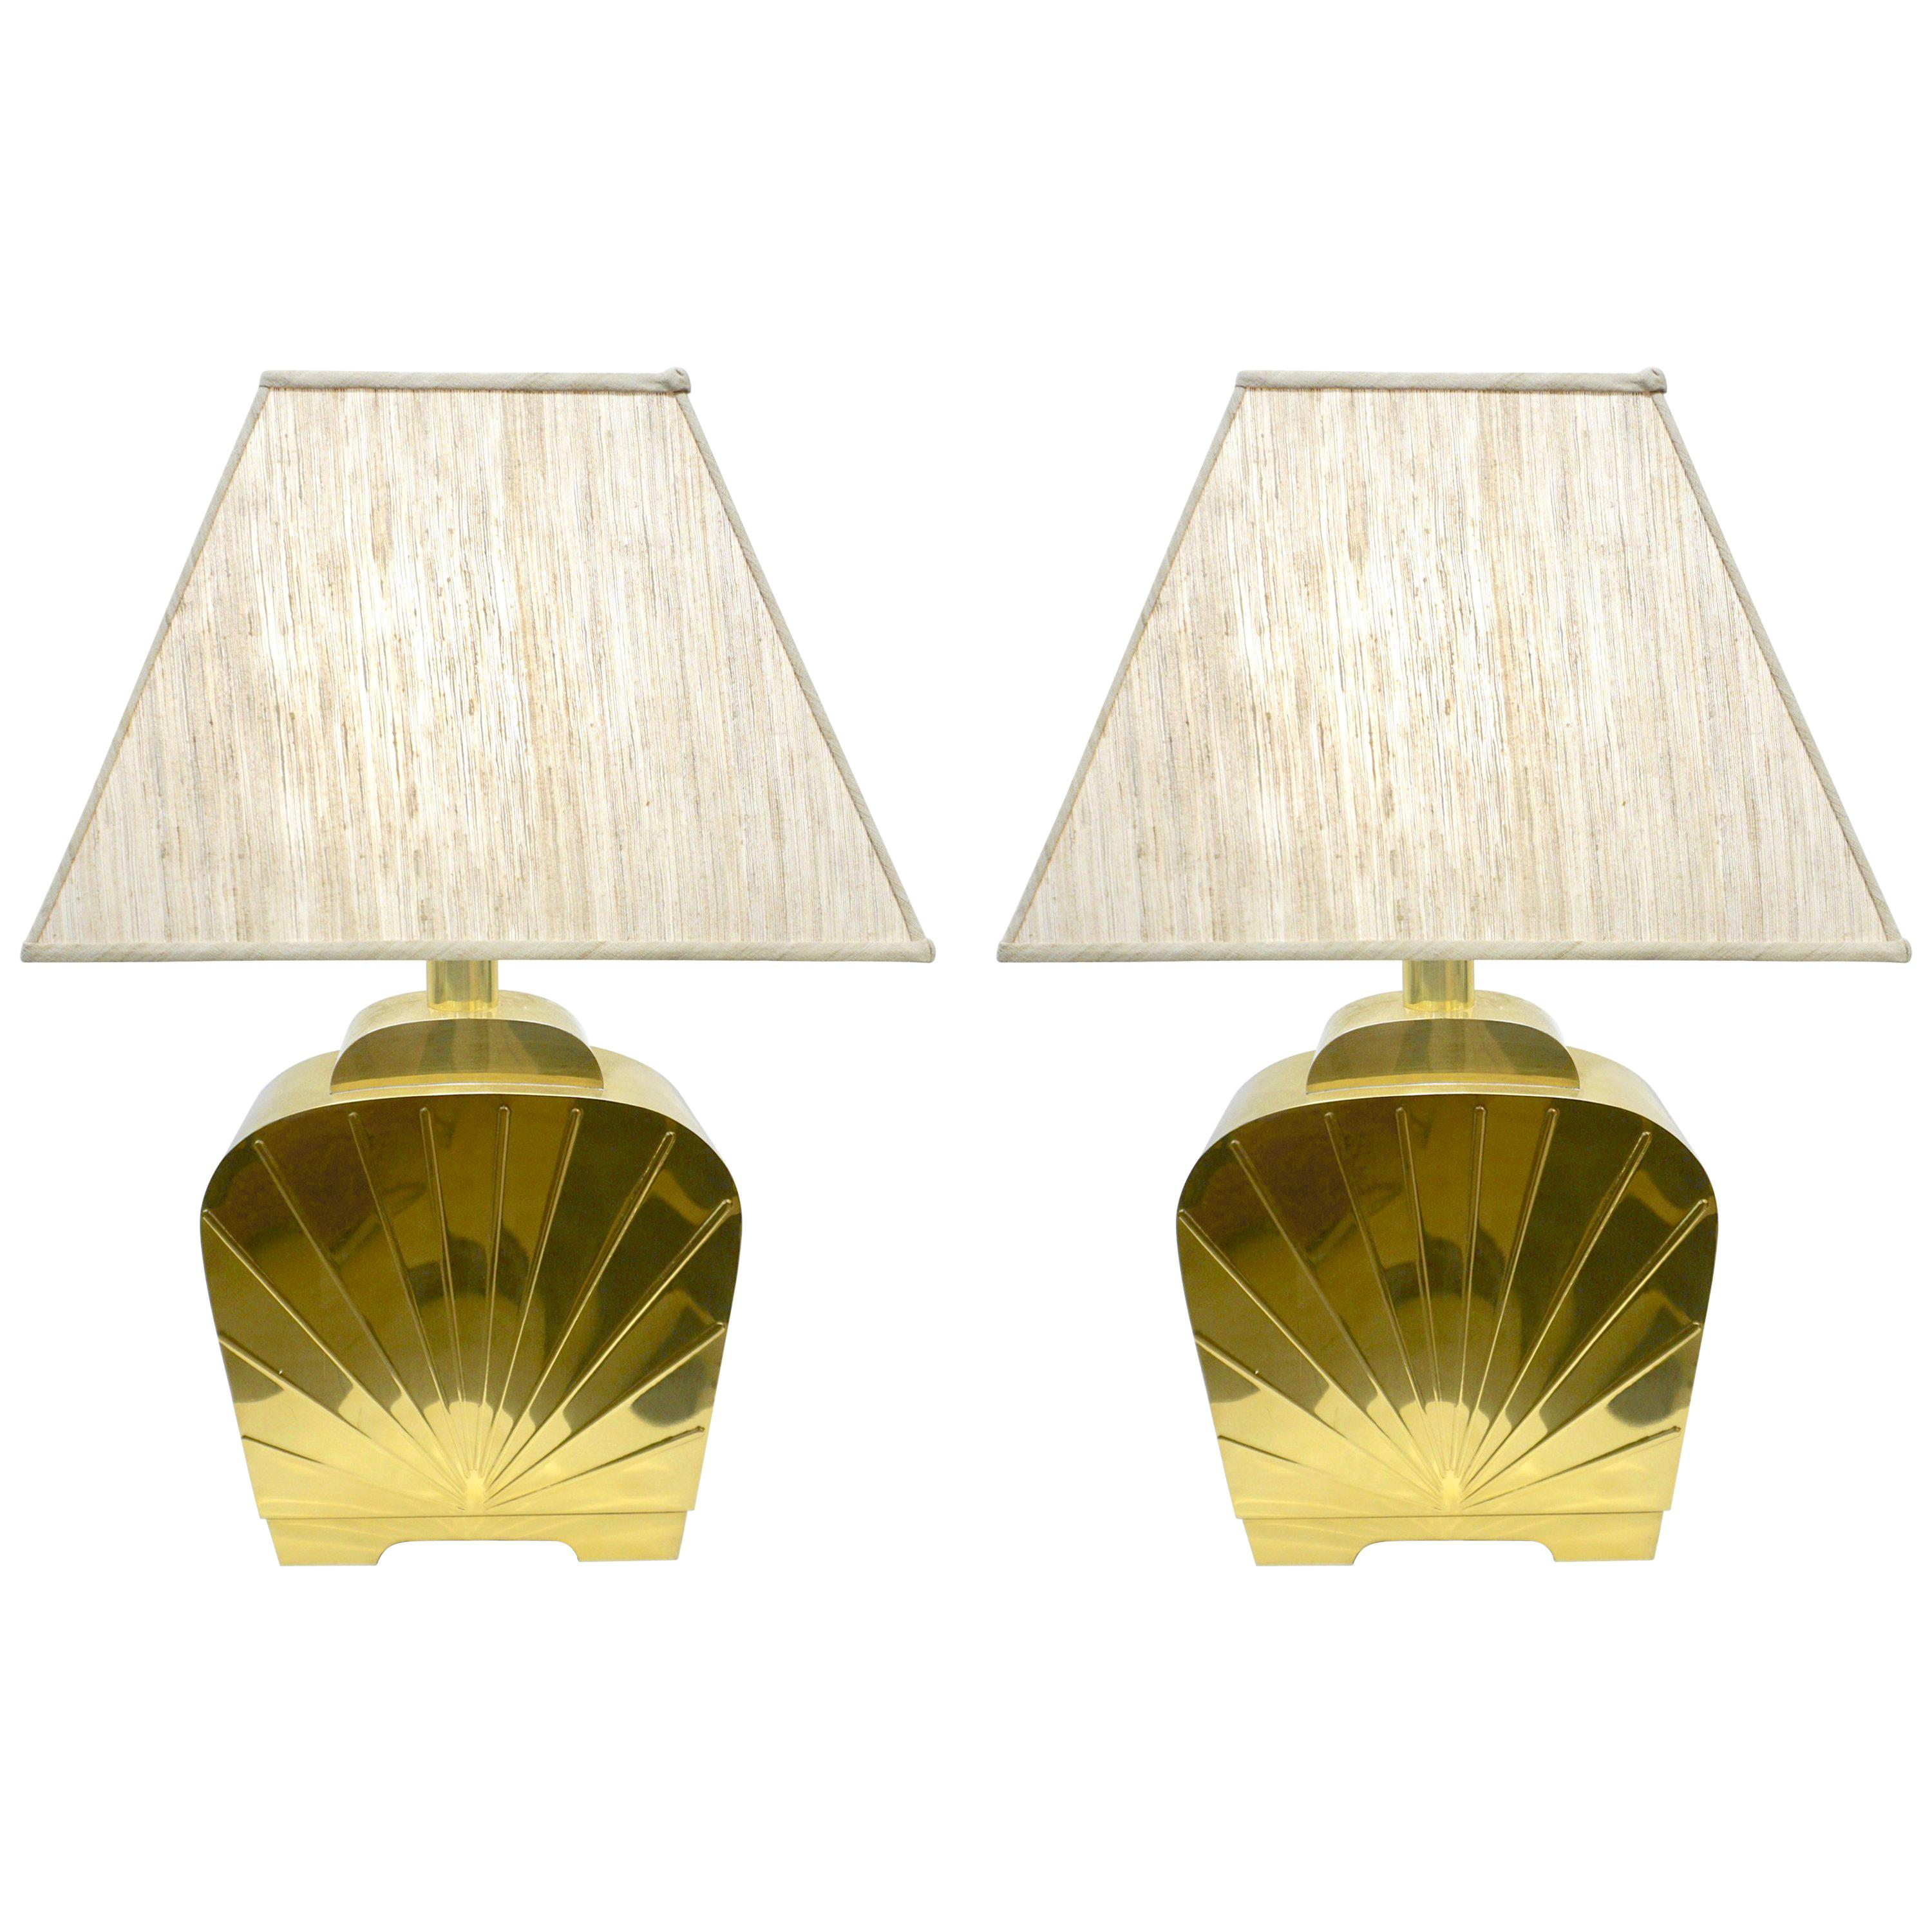 1970s Chapman Vintage Art Deco Design Pair of Hollywood Regency Gold Brass Lamps